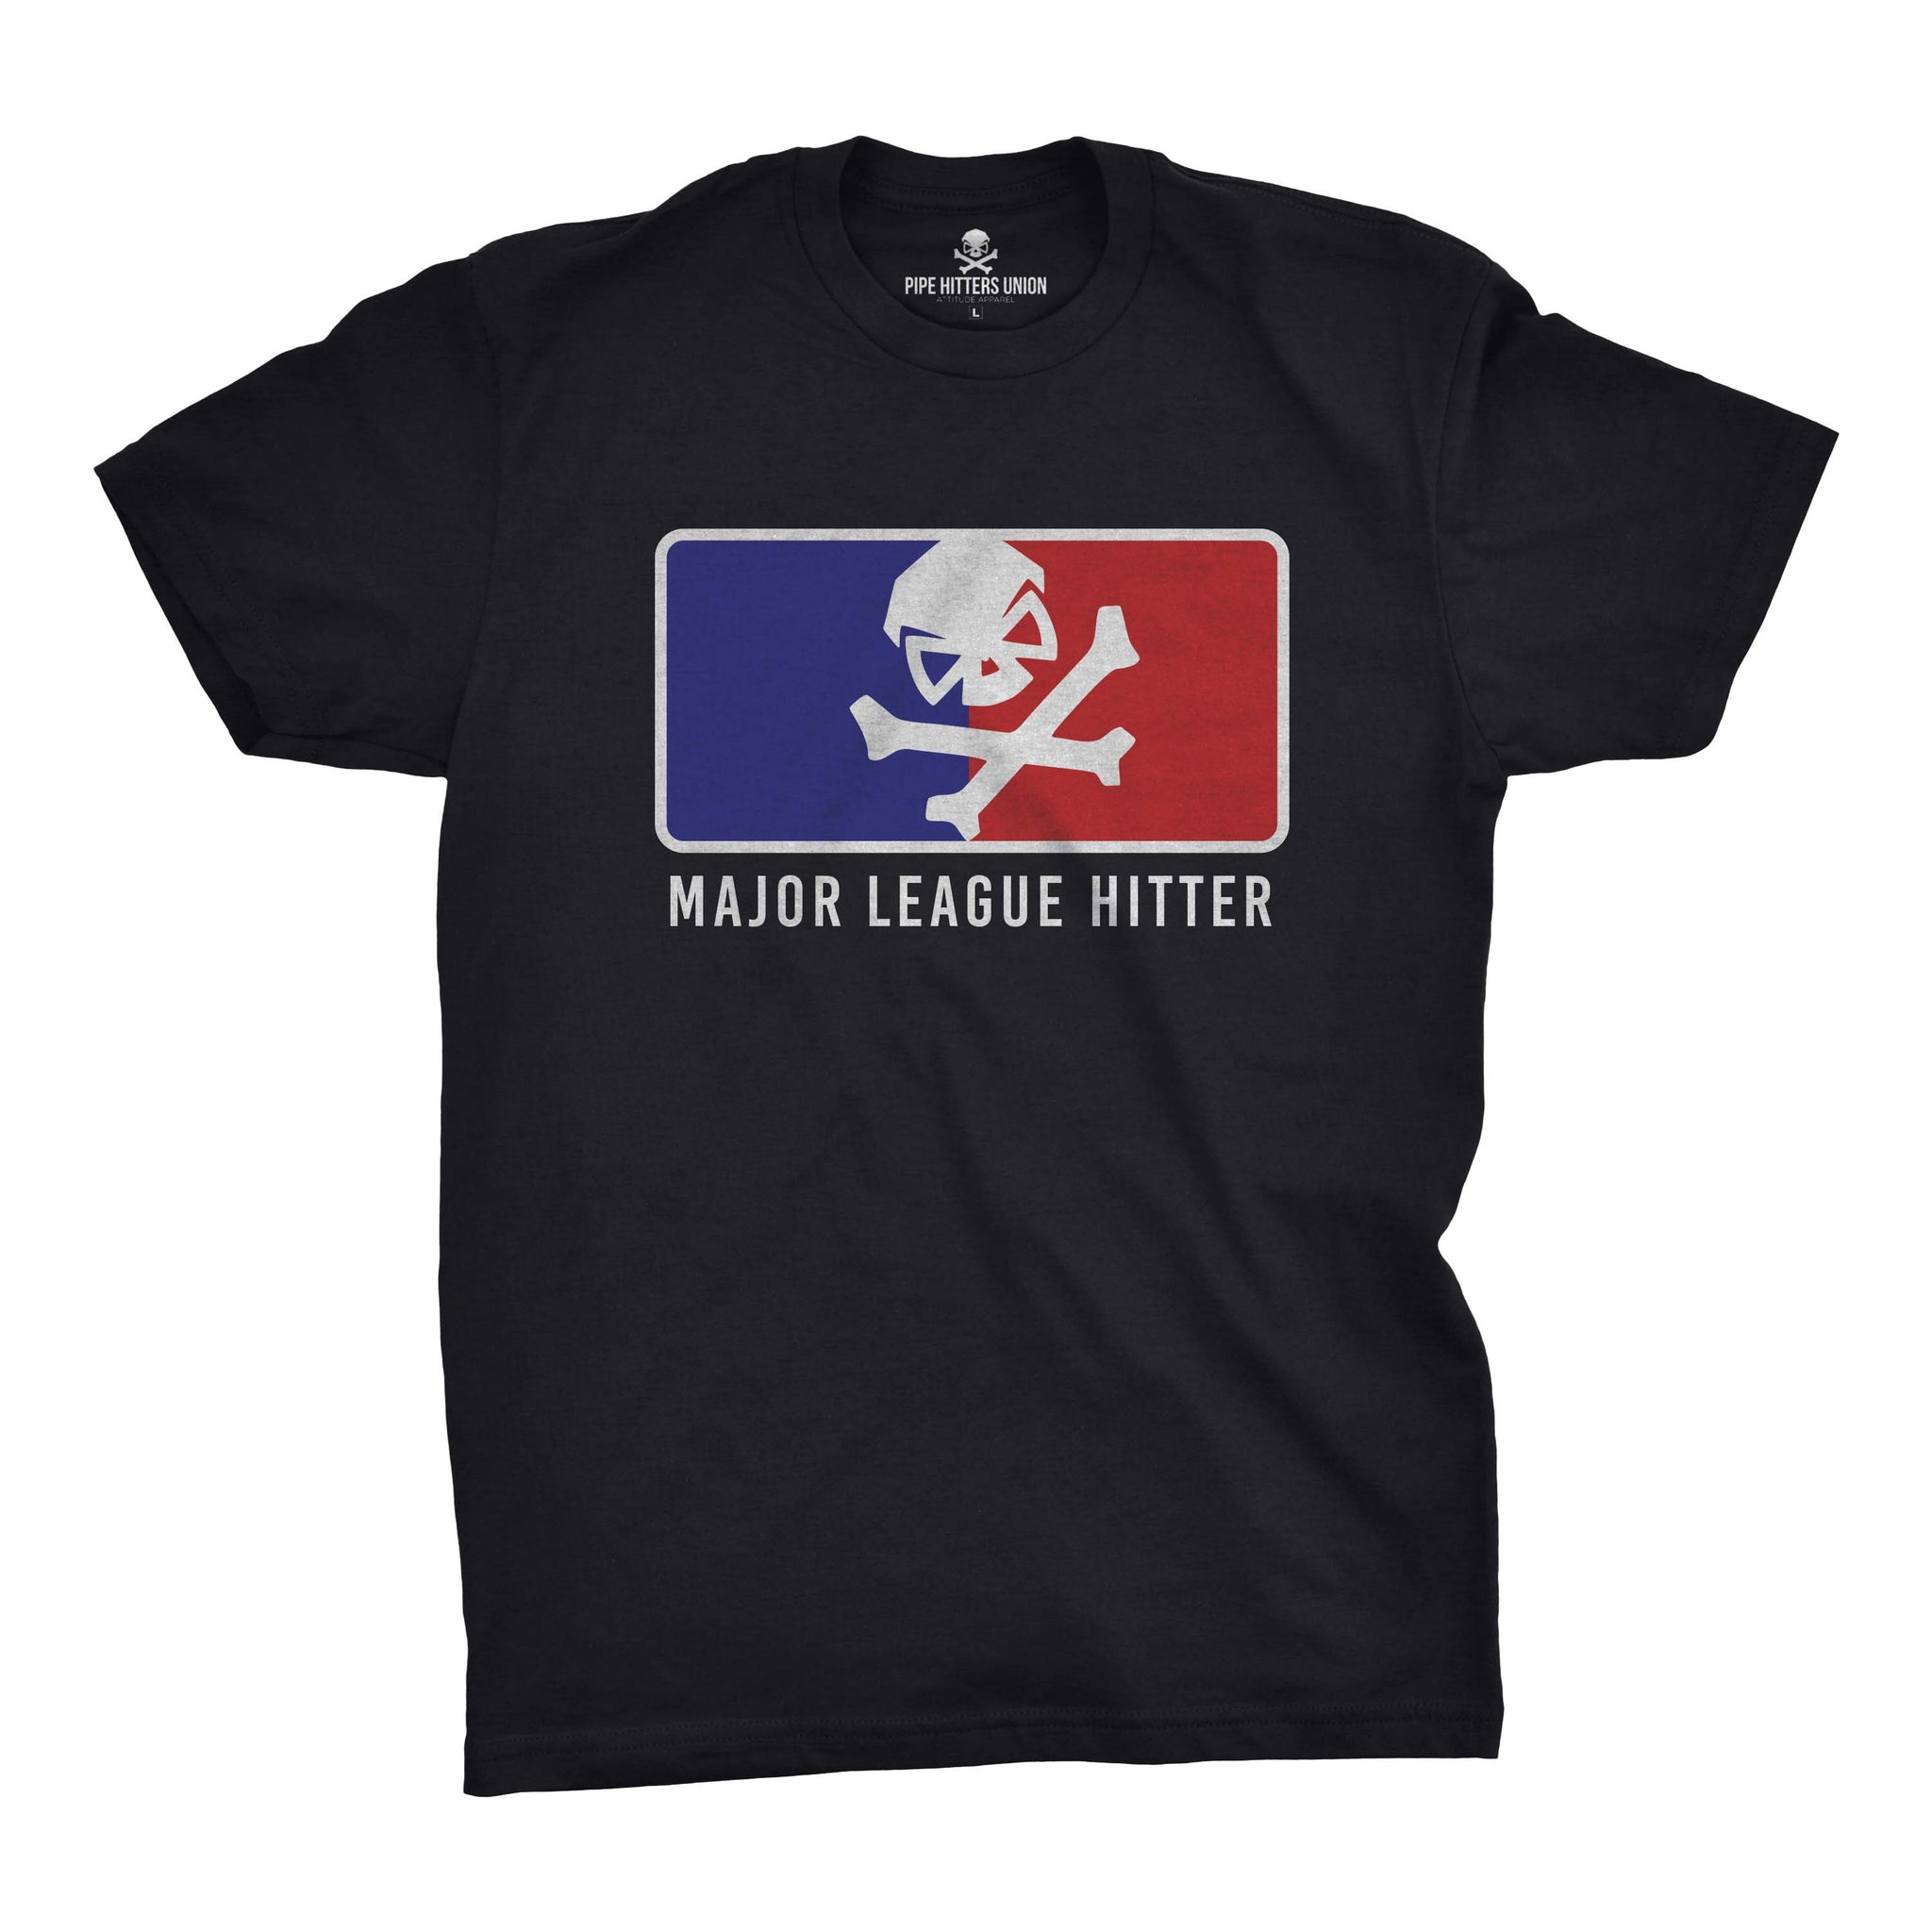 Major League Hitter - Black/RWB - T-Shirts - Pipe Hitters Union